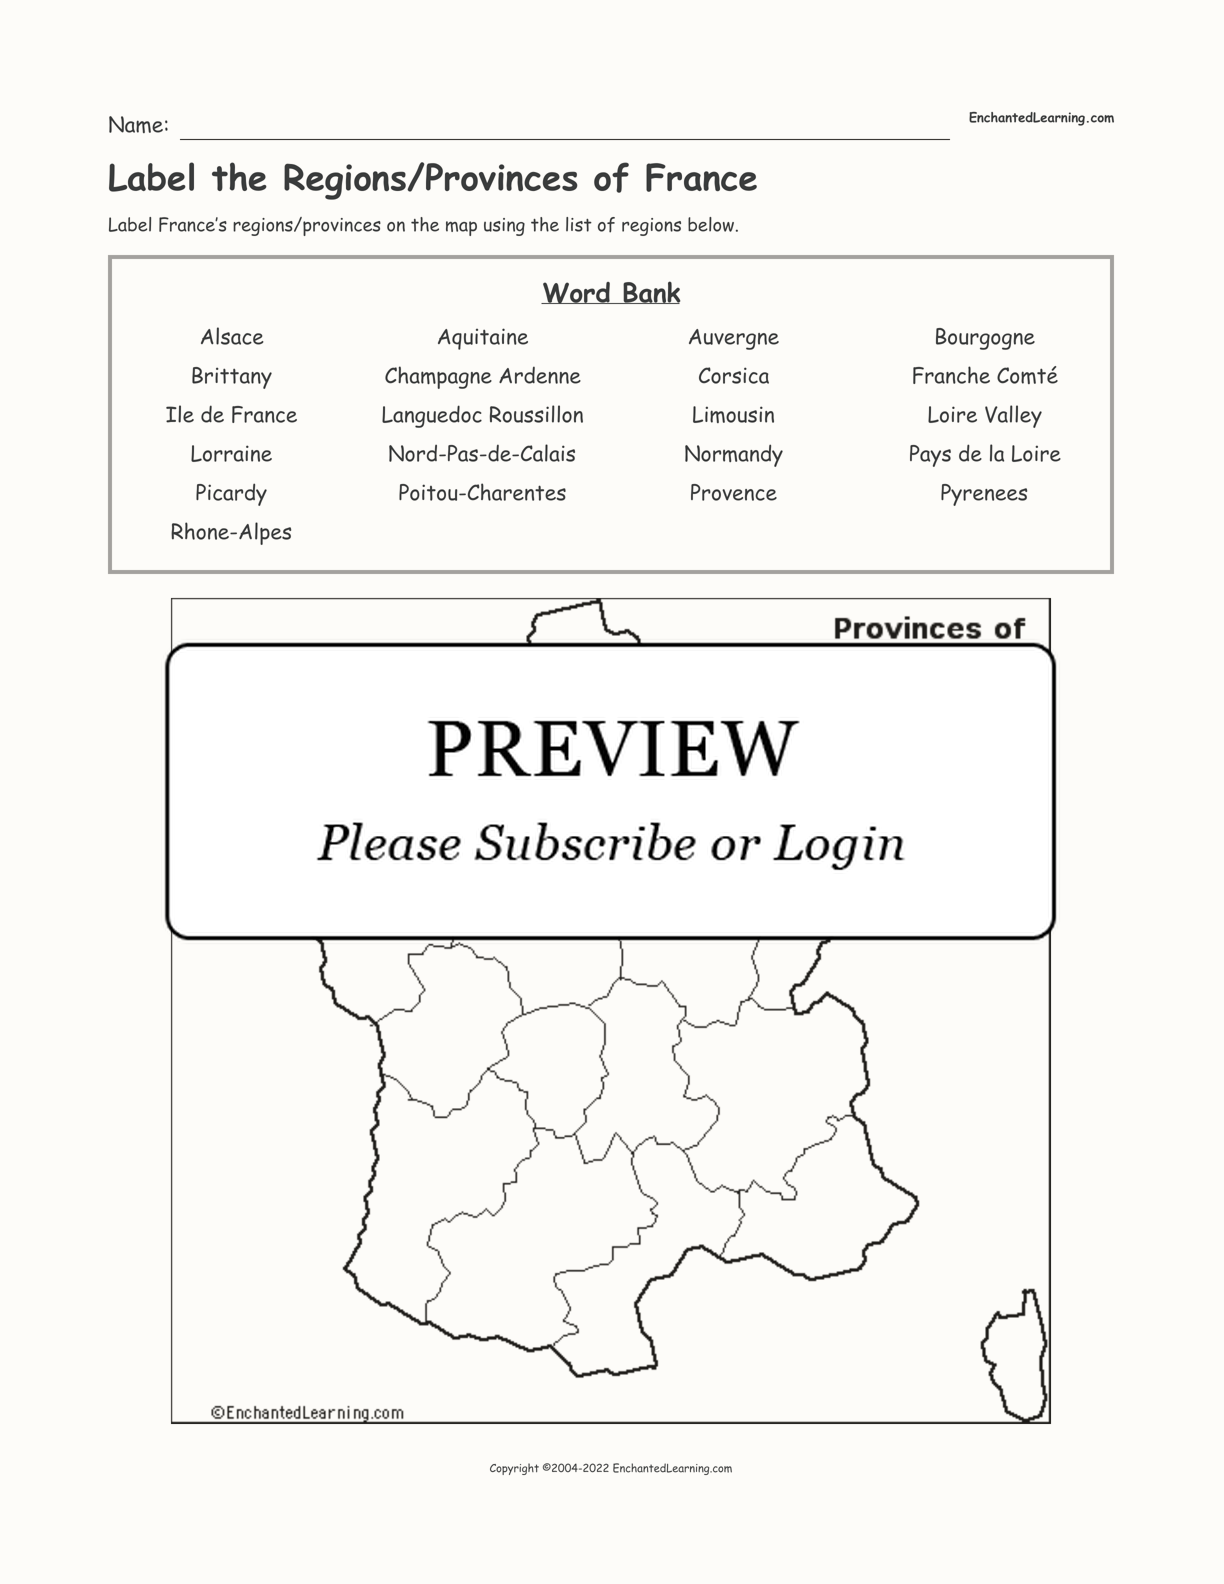 Label the Regions/Provinces of France interactive worksheet page 1